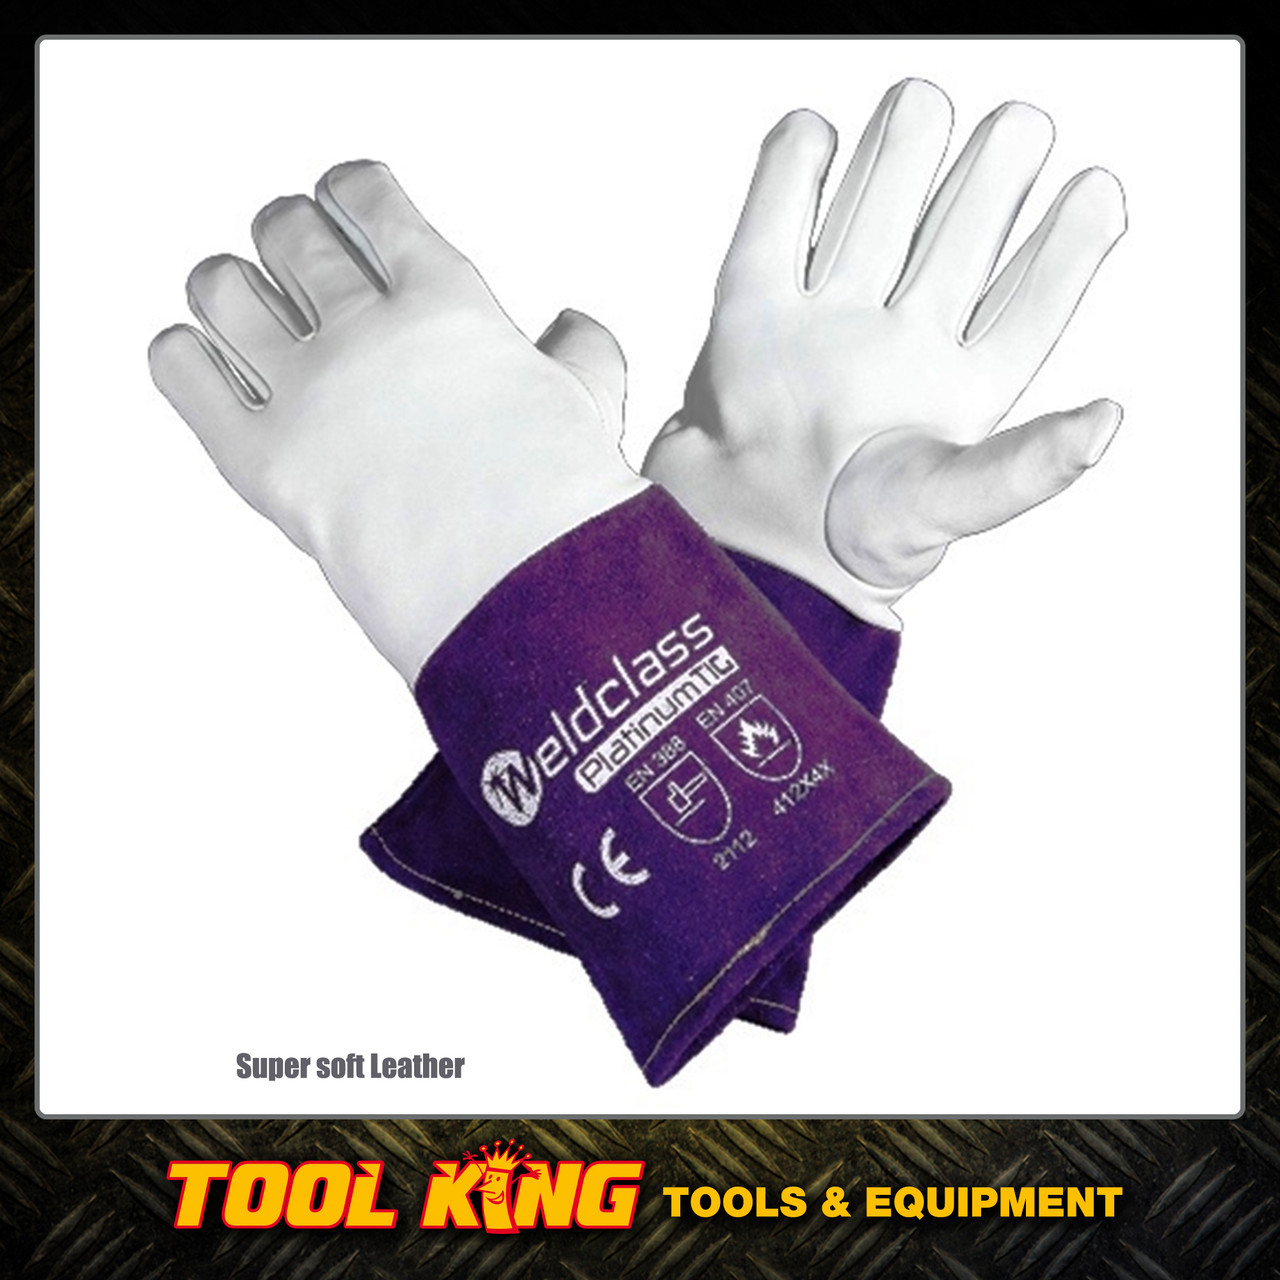 Tig Welders Gloves Platinum Soft Skin Leather Kevlar Stitched Weldclass Robson S Tool King Store